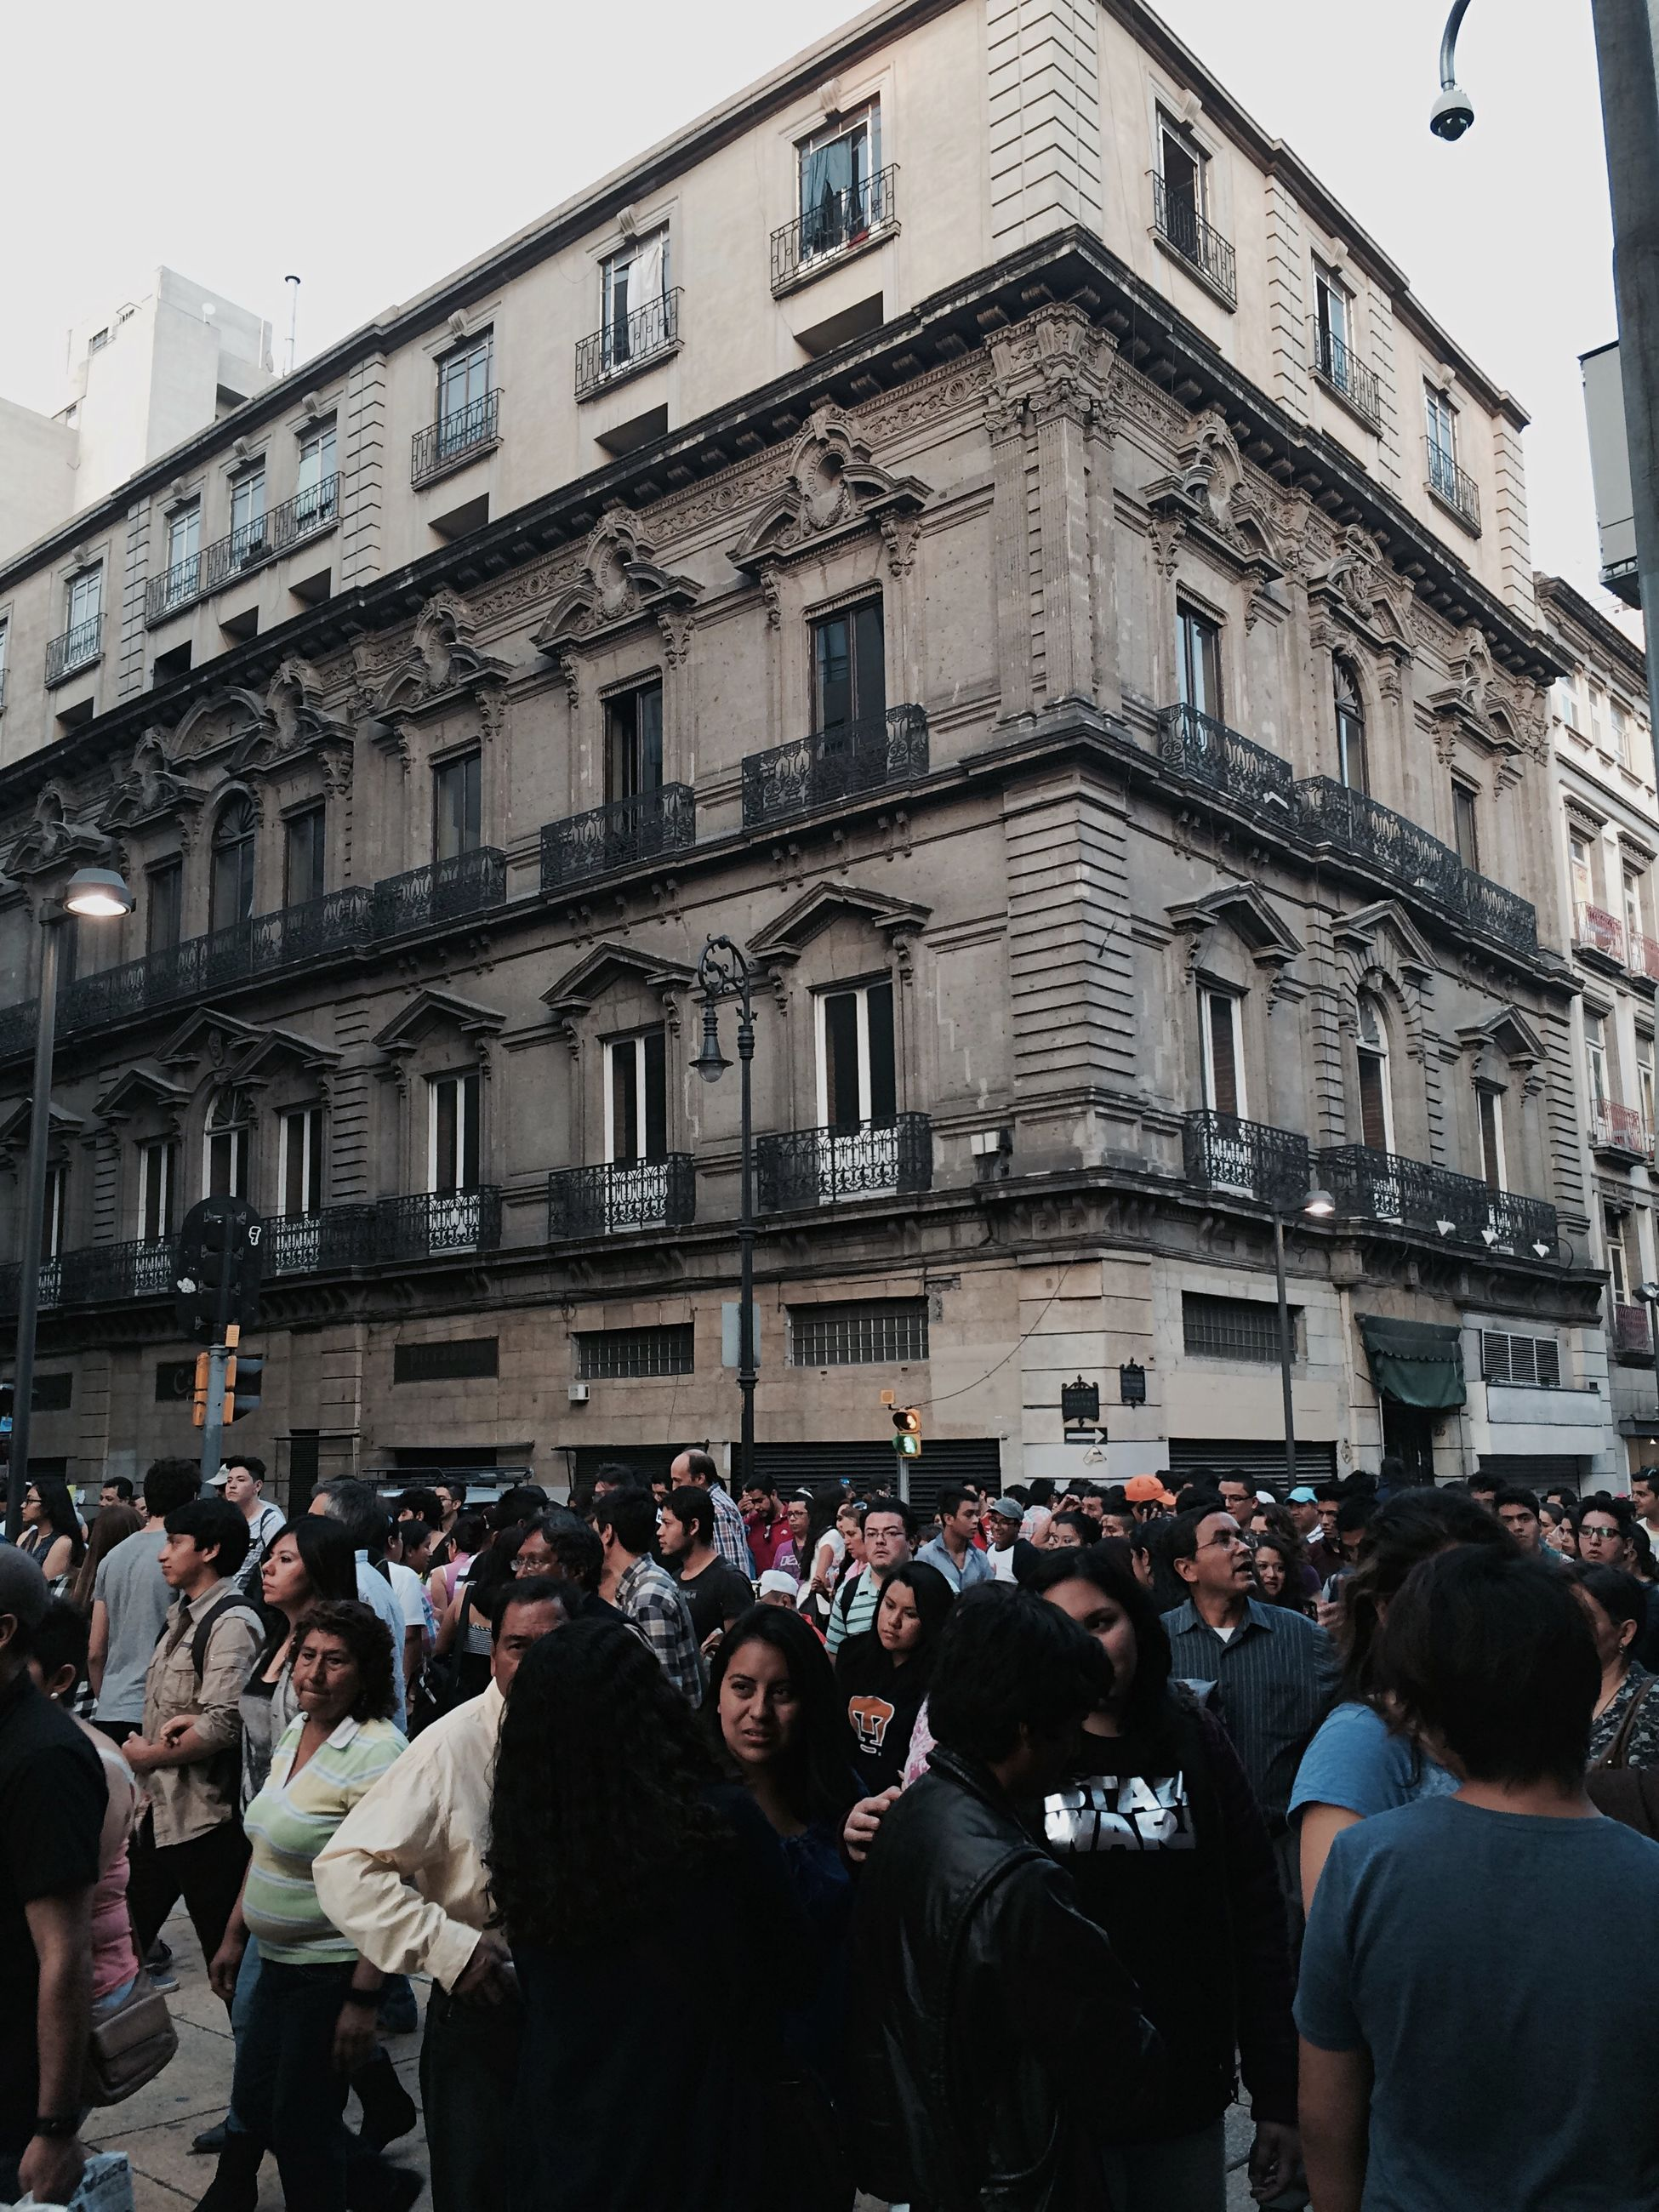 large group of people, building exterior, men, architecture, built structure, lifestyles, person, crowd, leisure activity, street, city life, city, walking, outdoors, day, building, mixed age range, sky, crowded